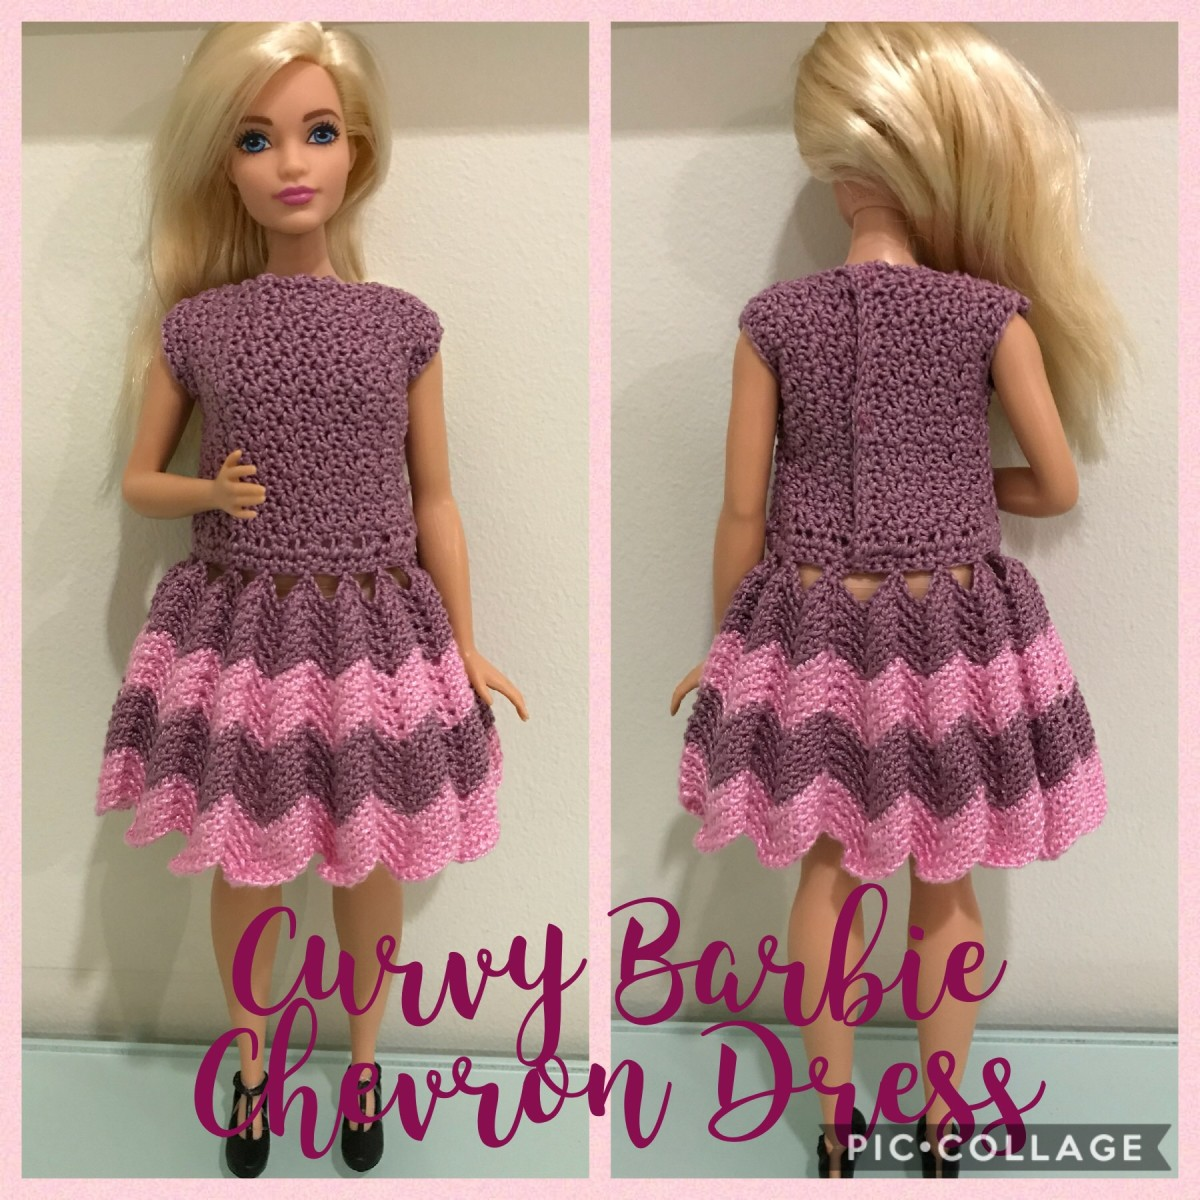 Curvy Barbie Chevron Dress (Free Crochet Pattern)